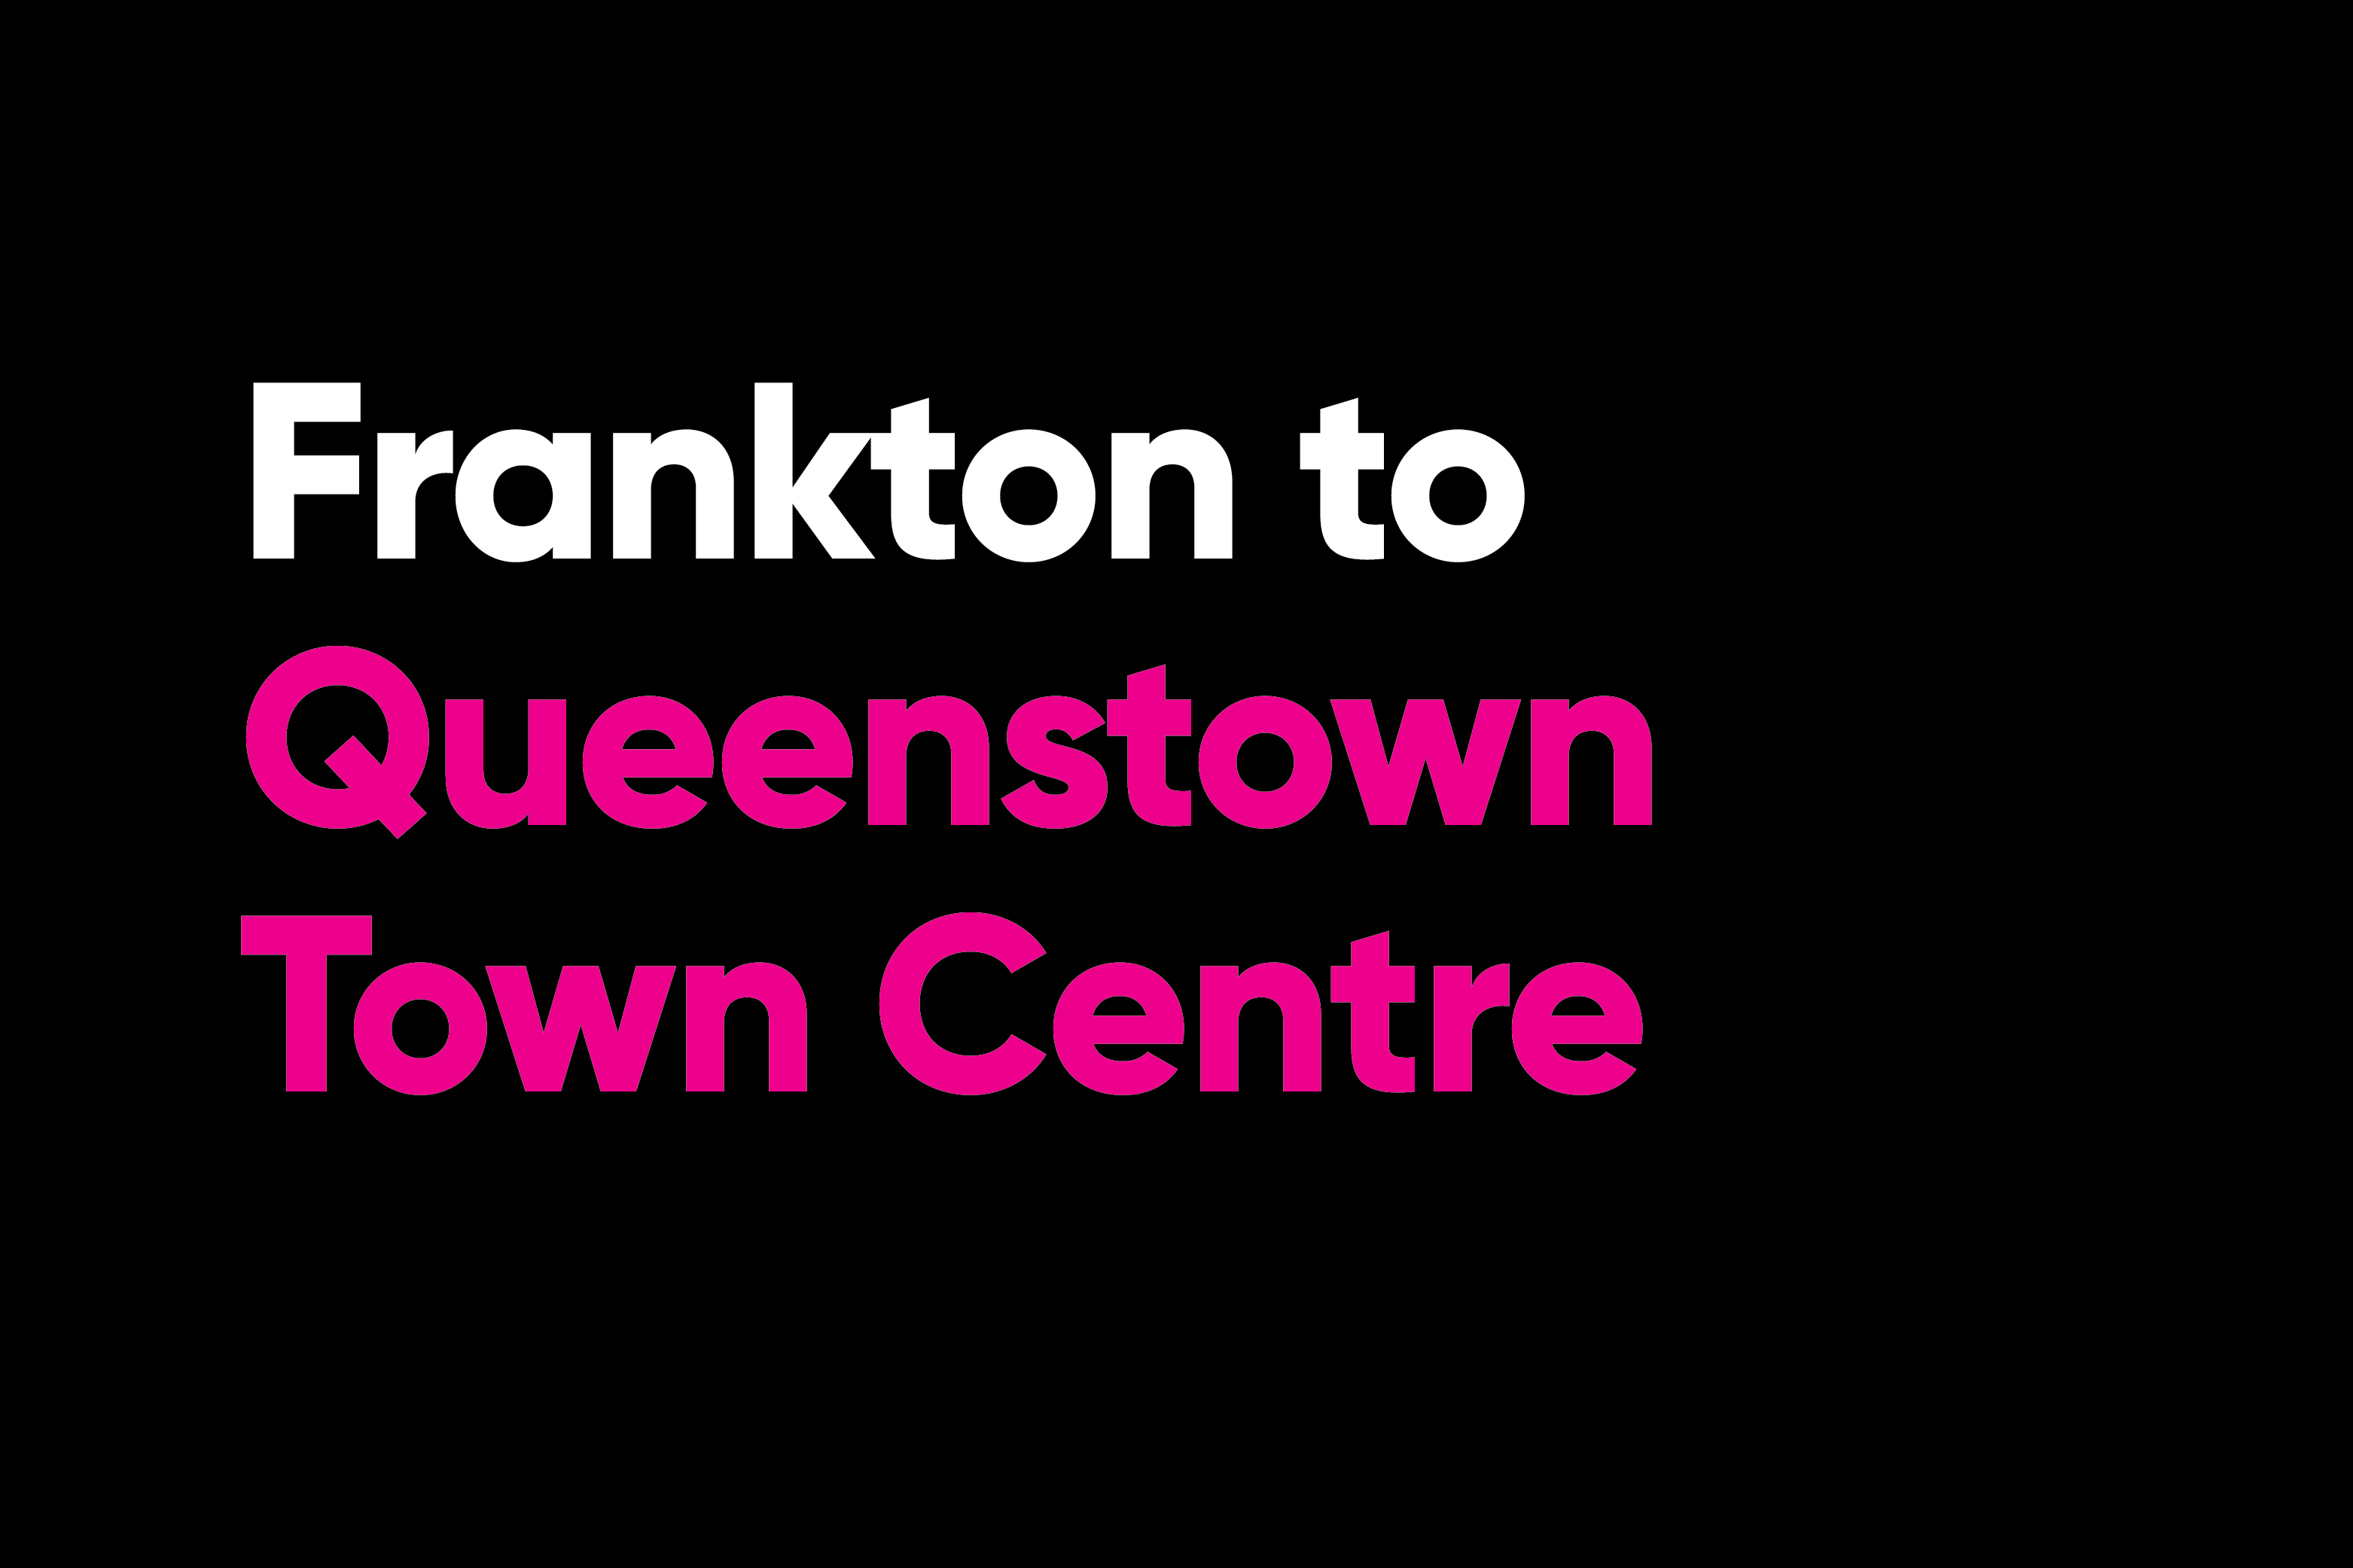 Frankton to queenstown town centre